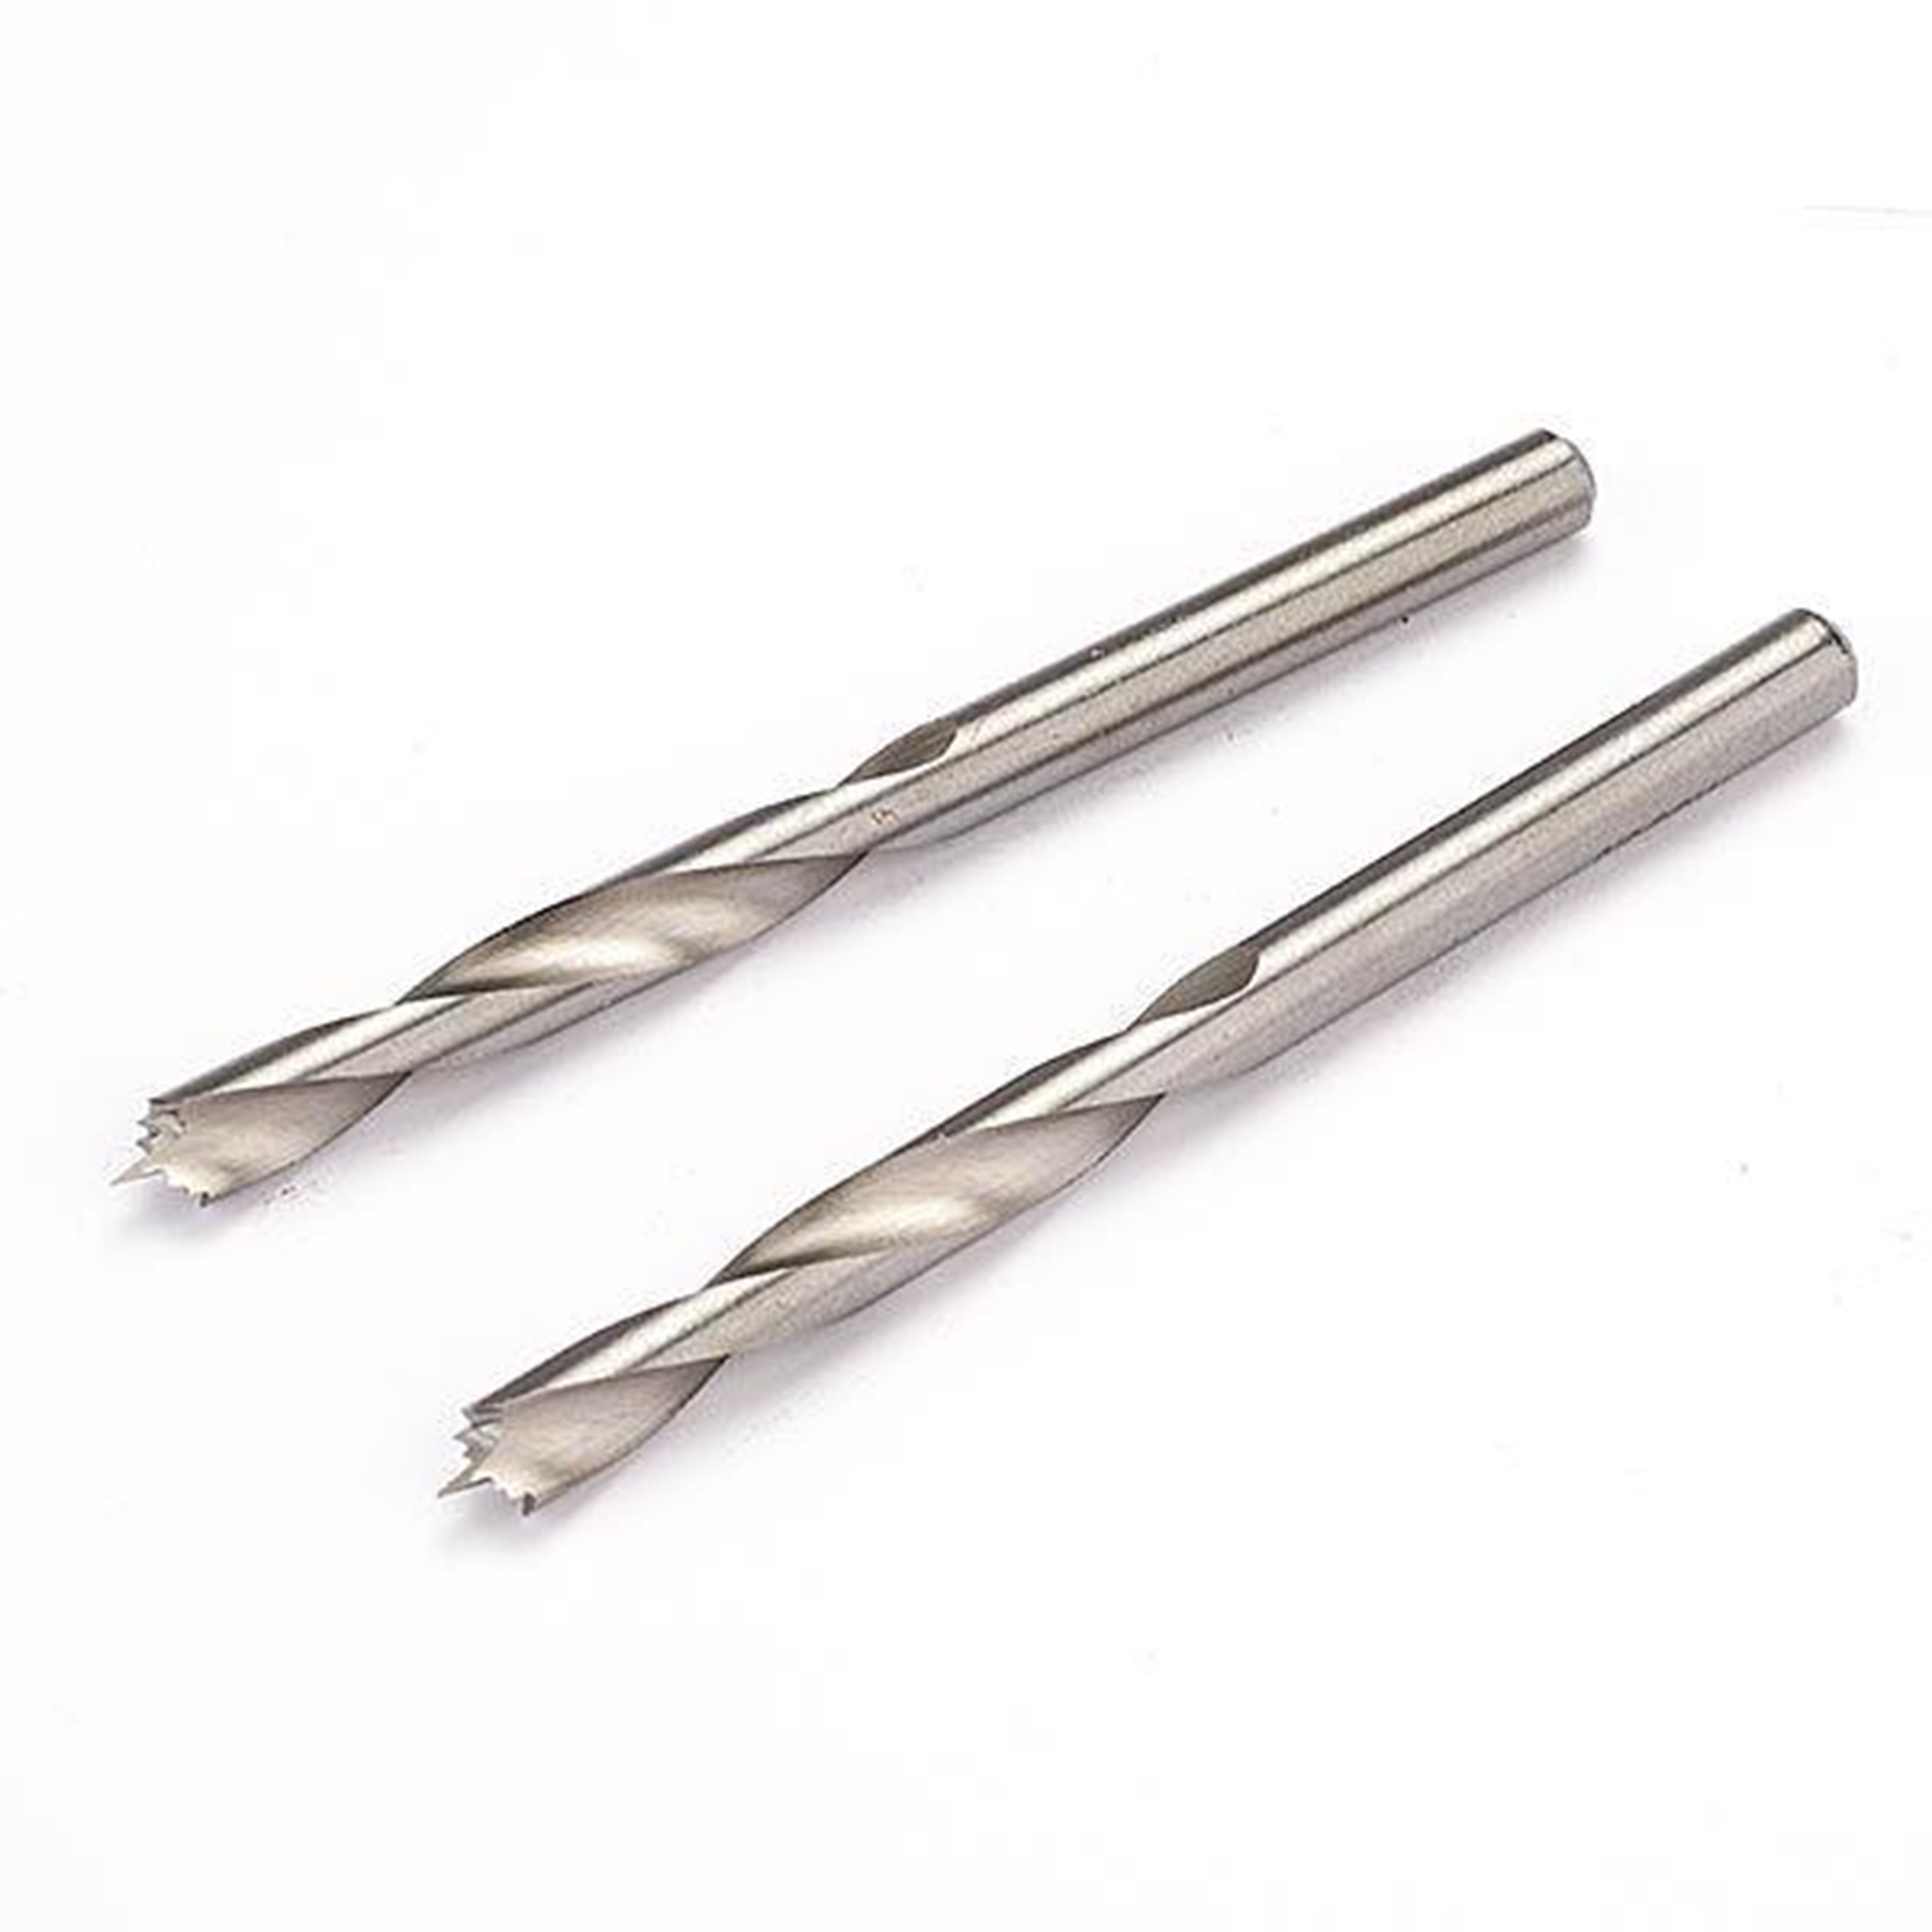 2-Pieces 5mm Replacement Drill Bit For Shelf Pin Bit